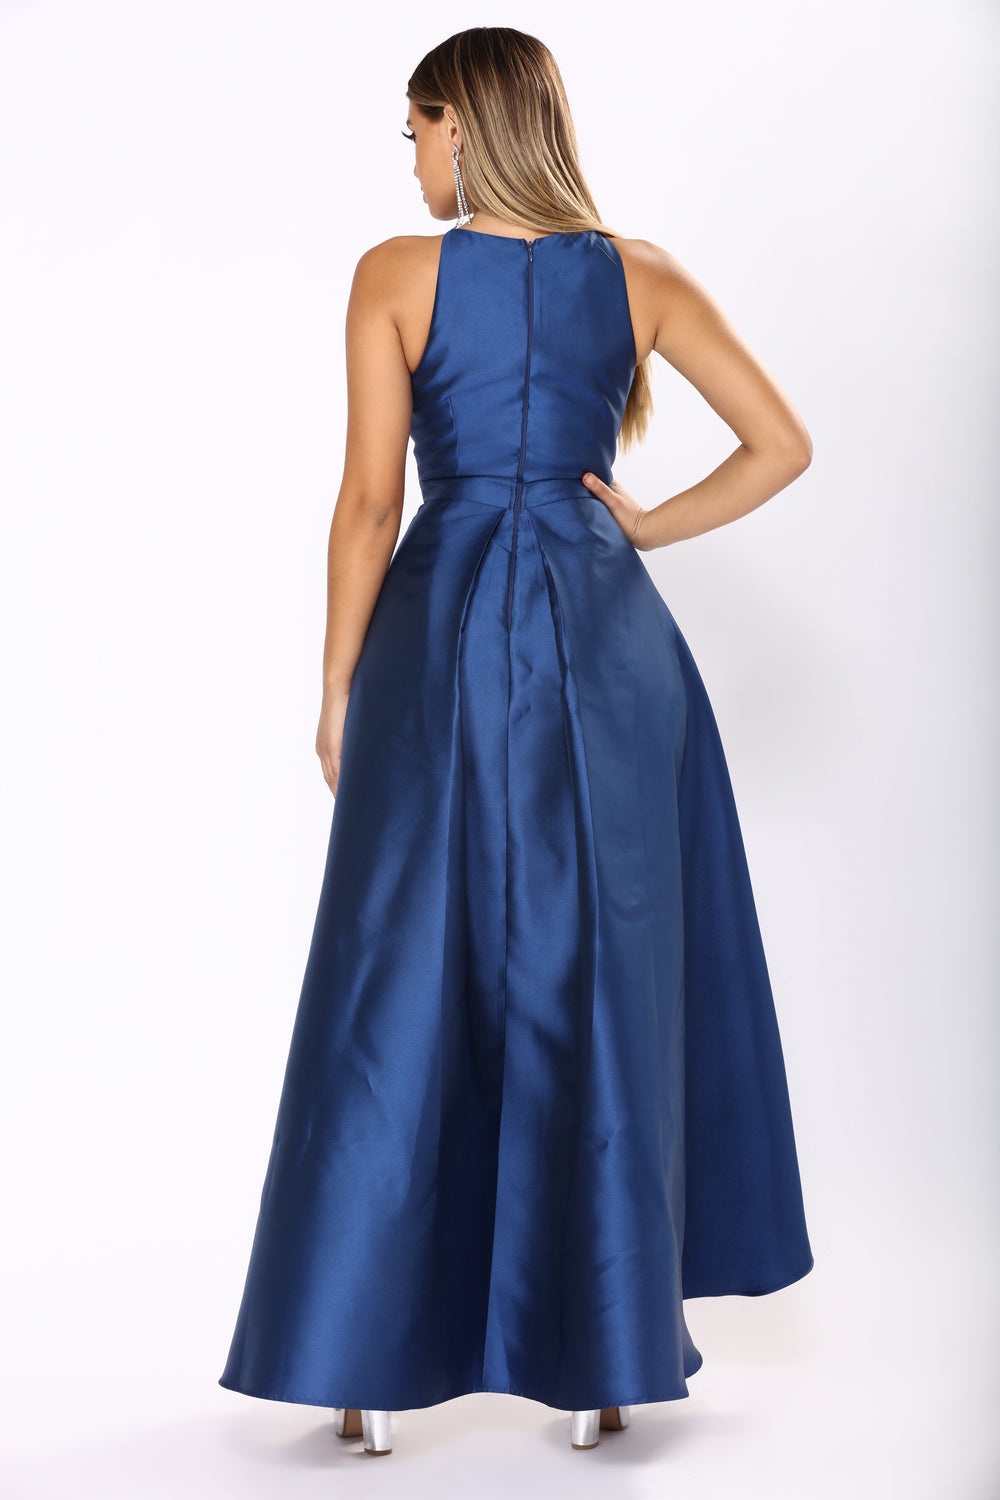 Heartedly High Low Dress - Navy